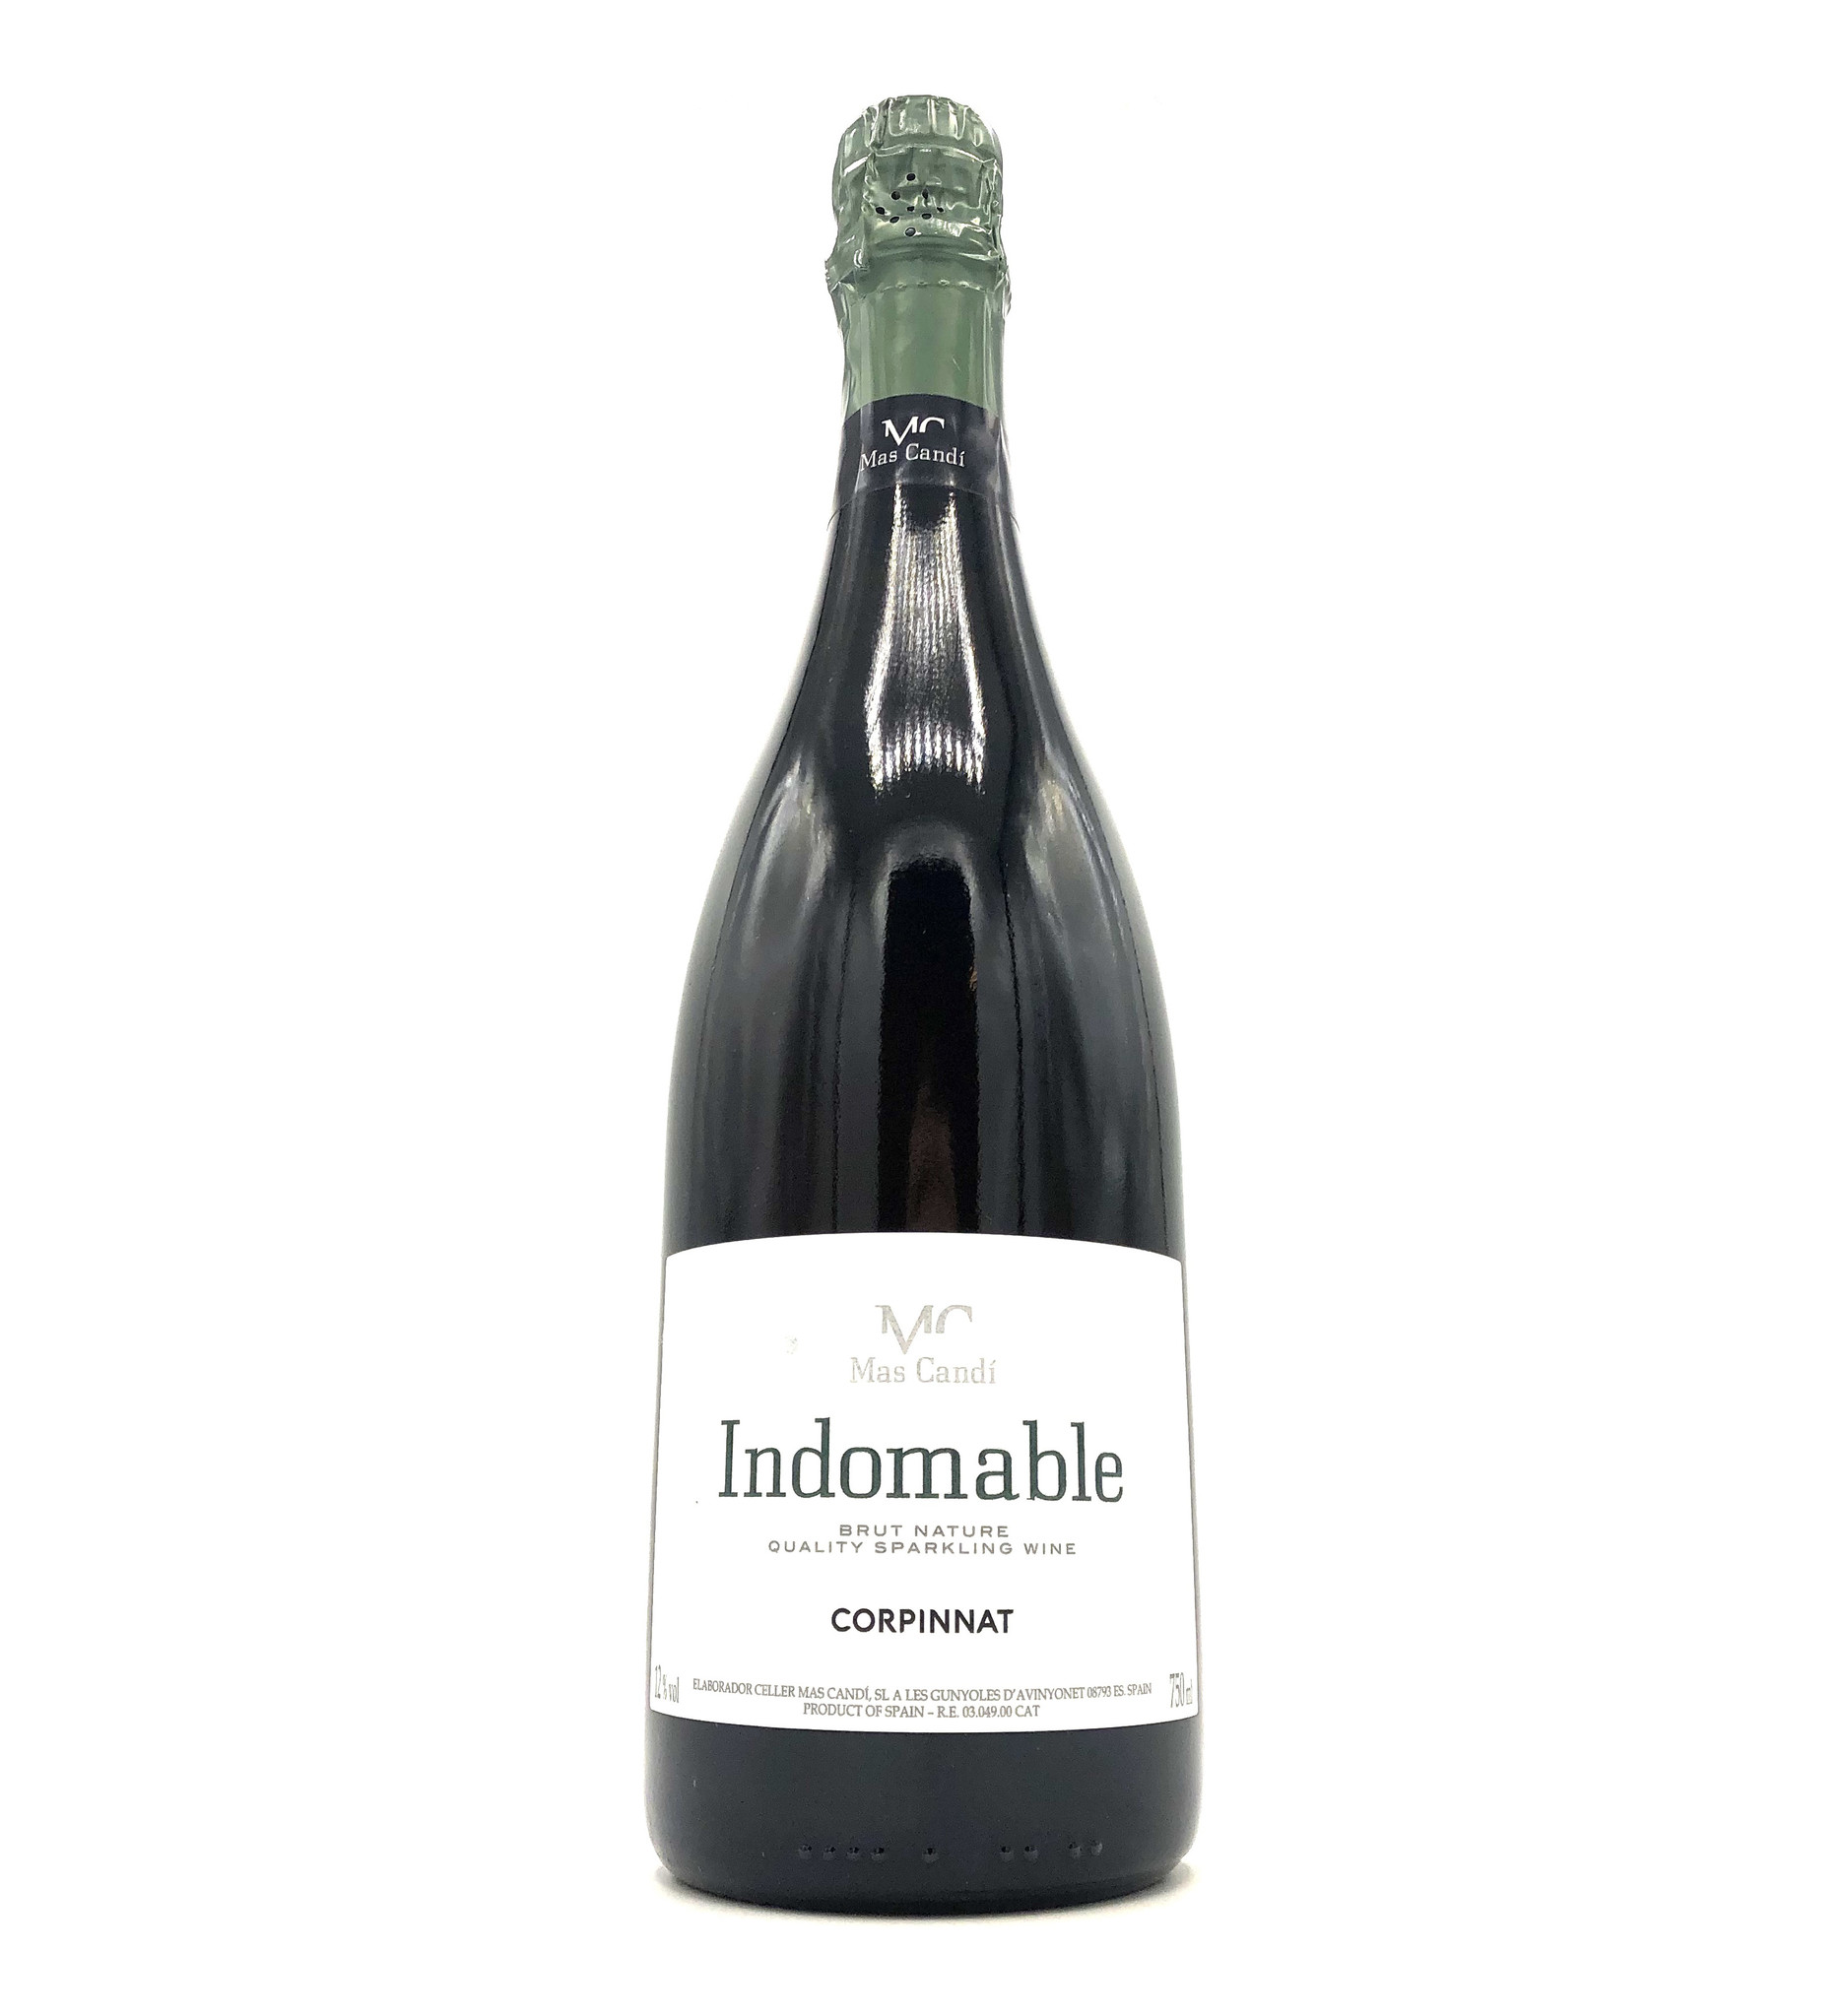 Cava Brut Nature Indomable 2013 Mas Candi